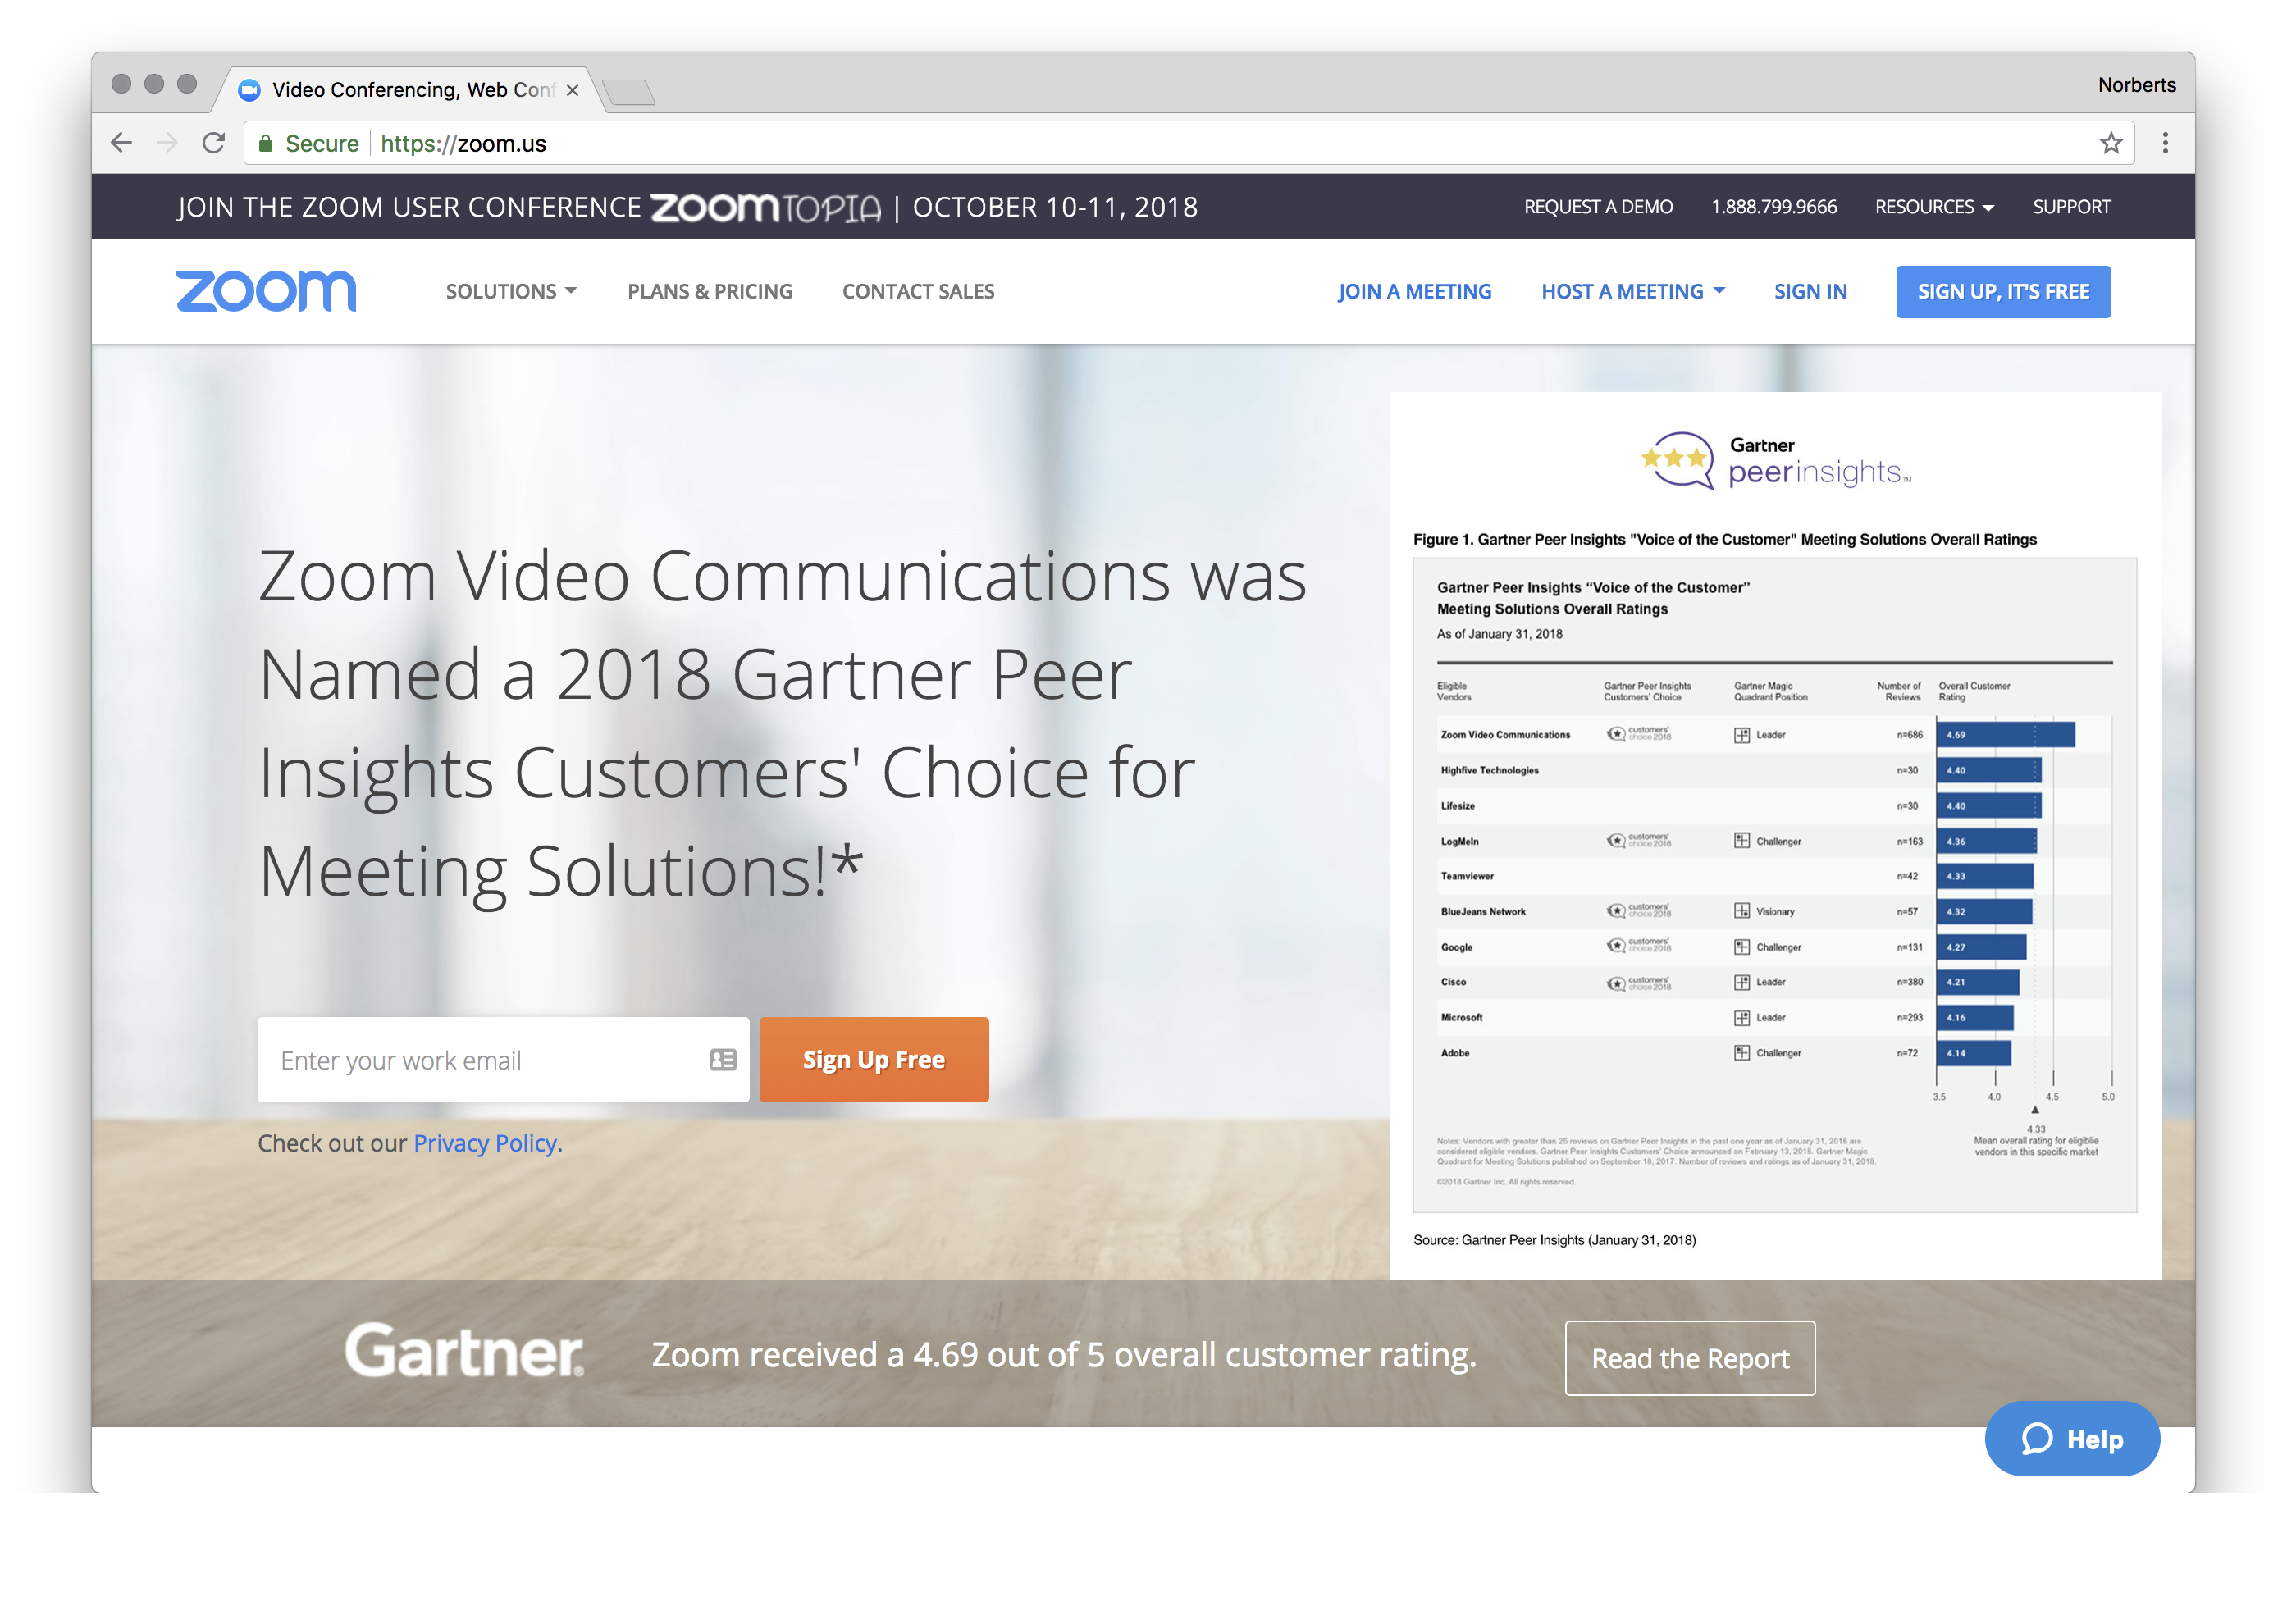 Zoom Video Communications was Named a 2018 Gartner Peer Insights Customers' Choice for Meeting Solutions!*